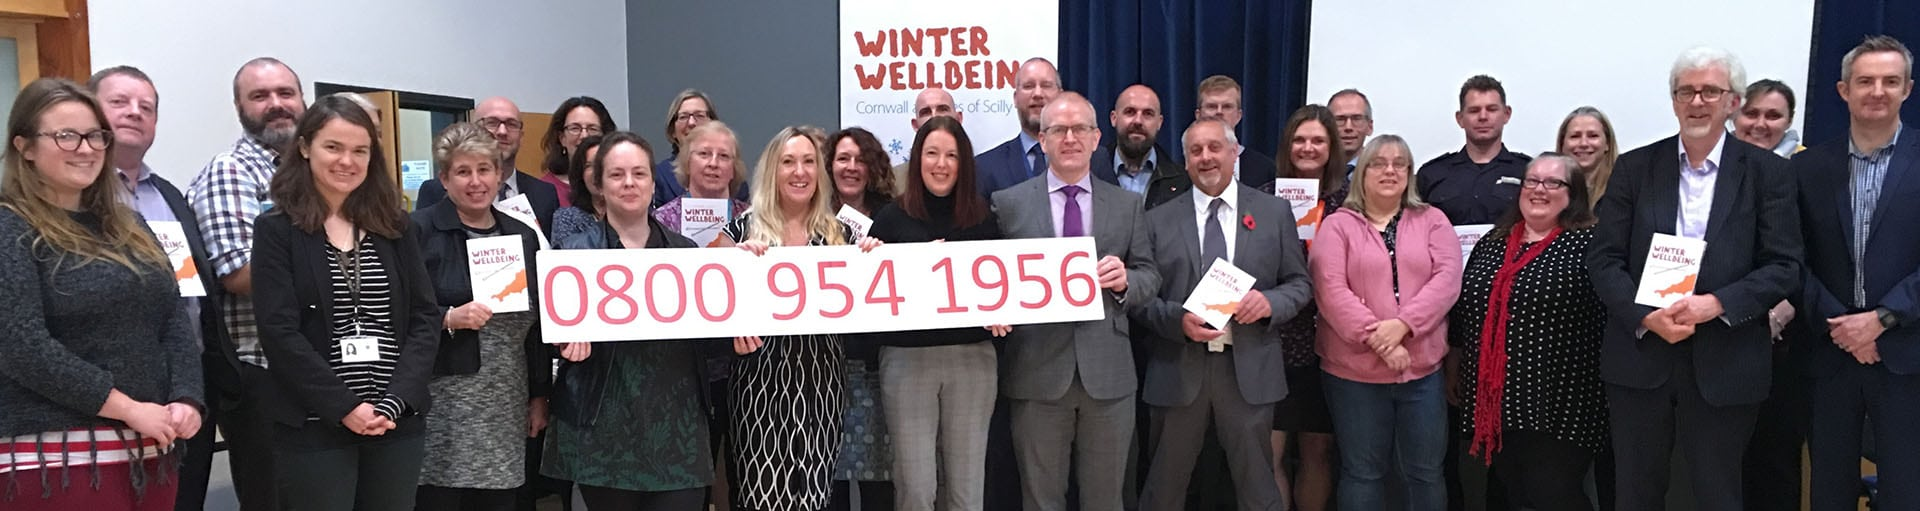 Winter Wellbeing launch 2017